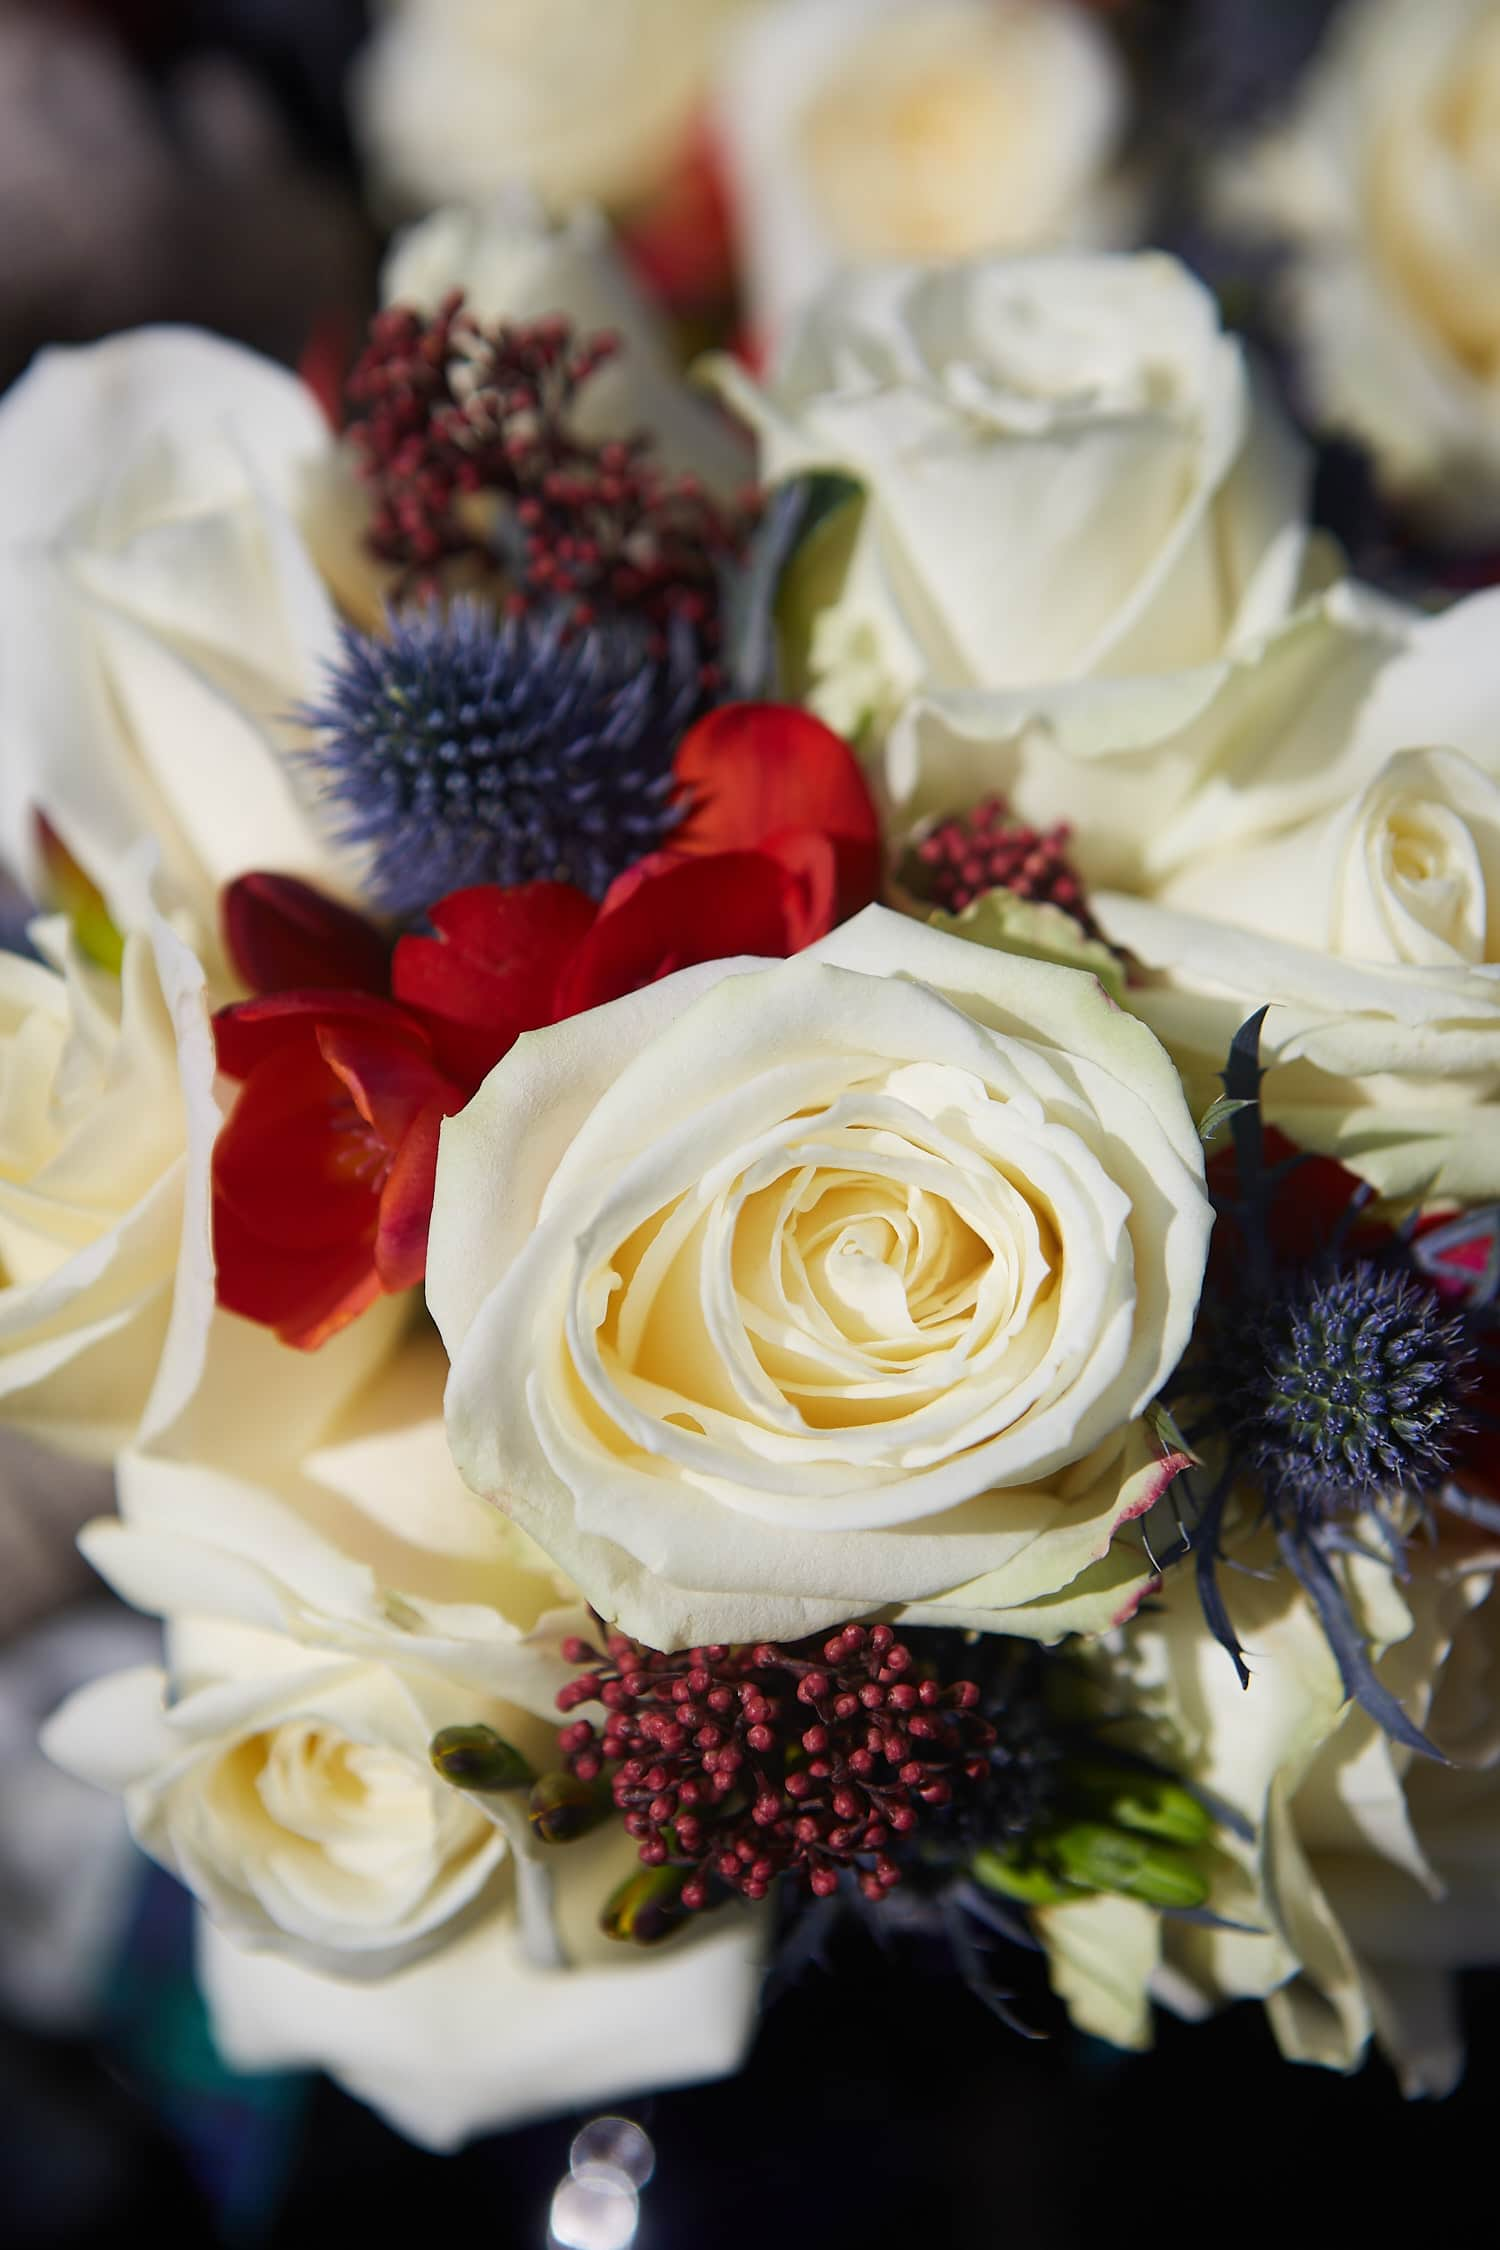 A close up of some wedding flowers